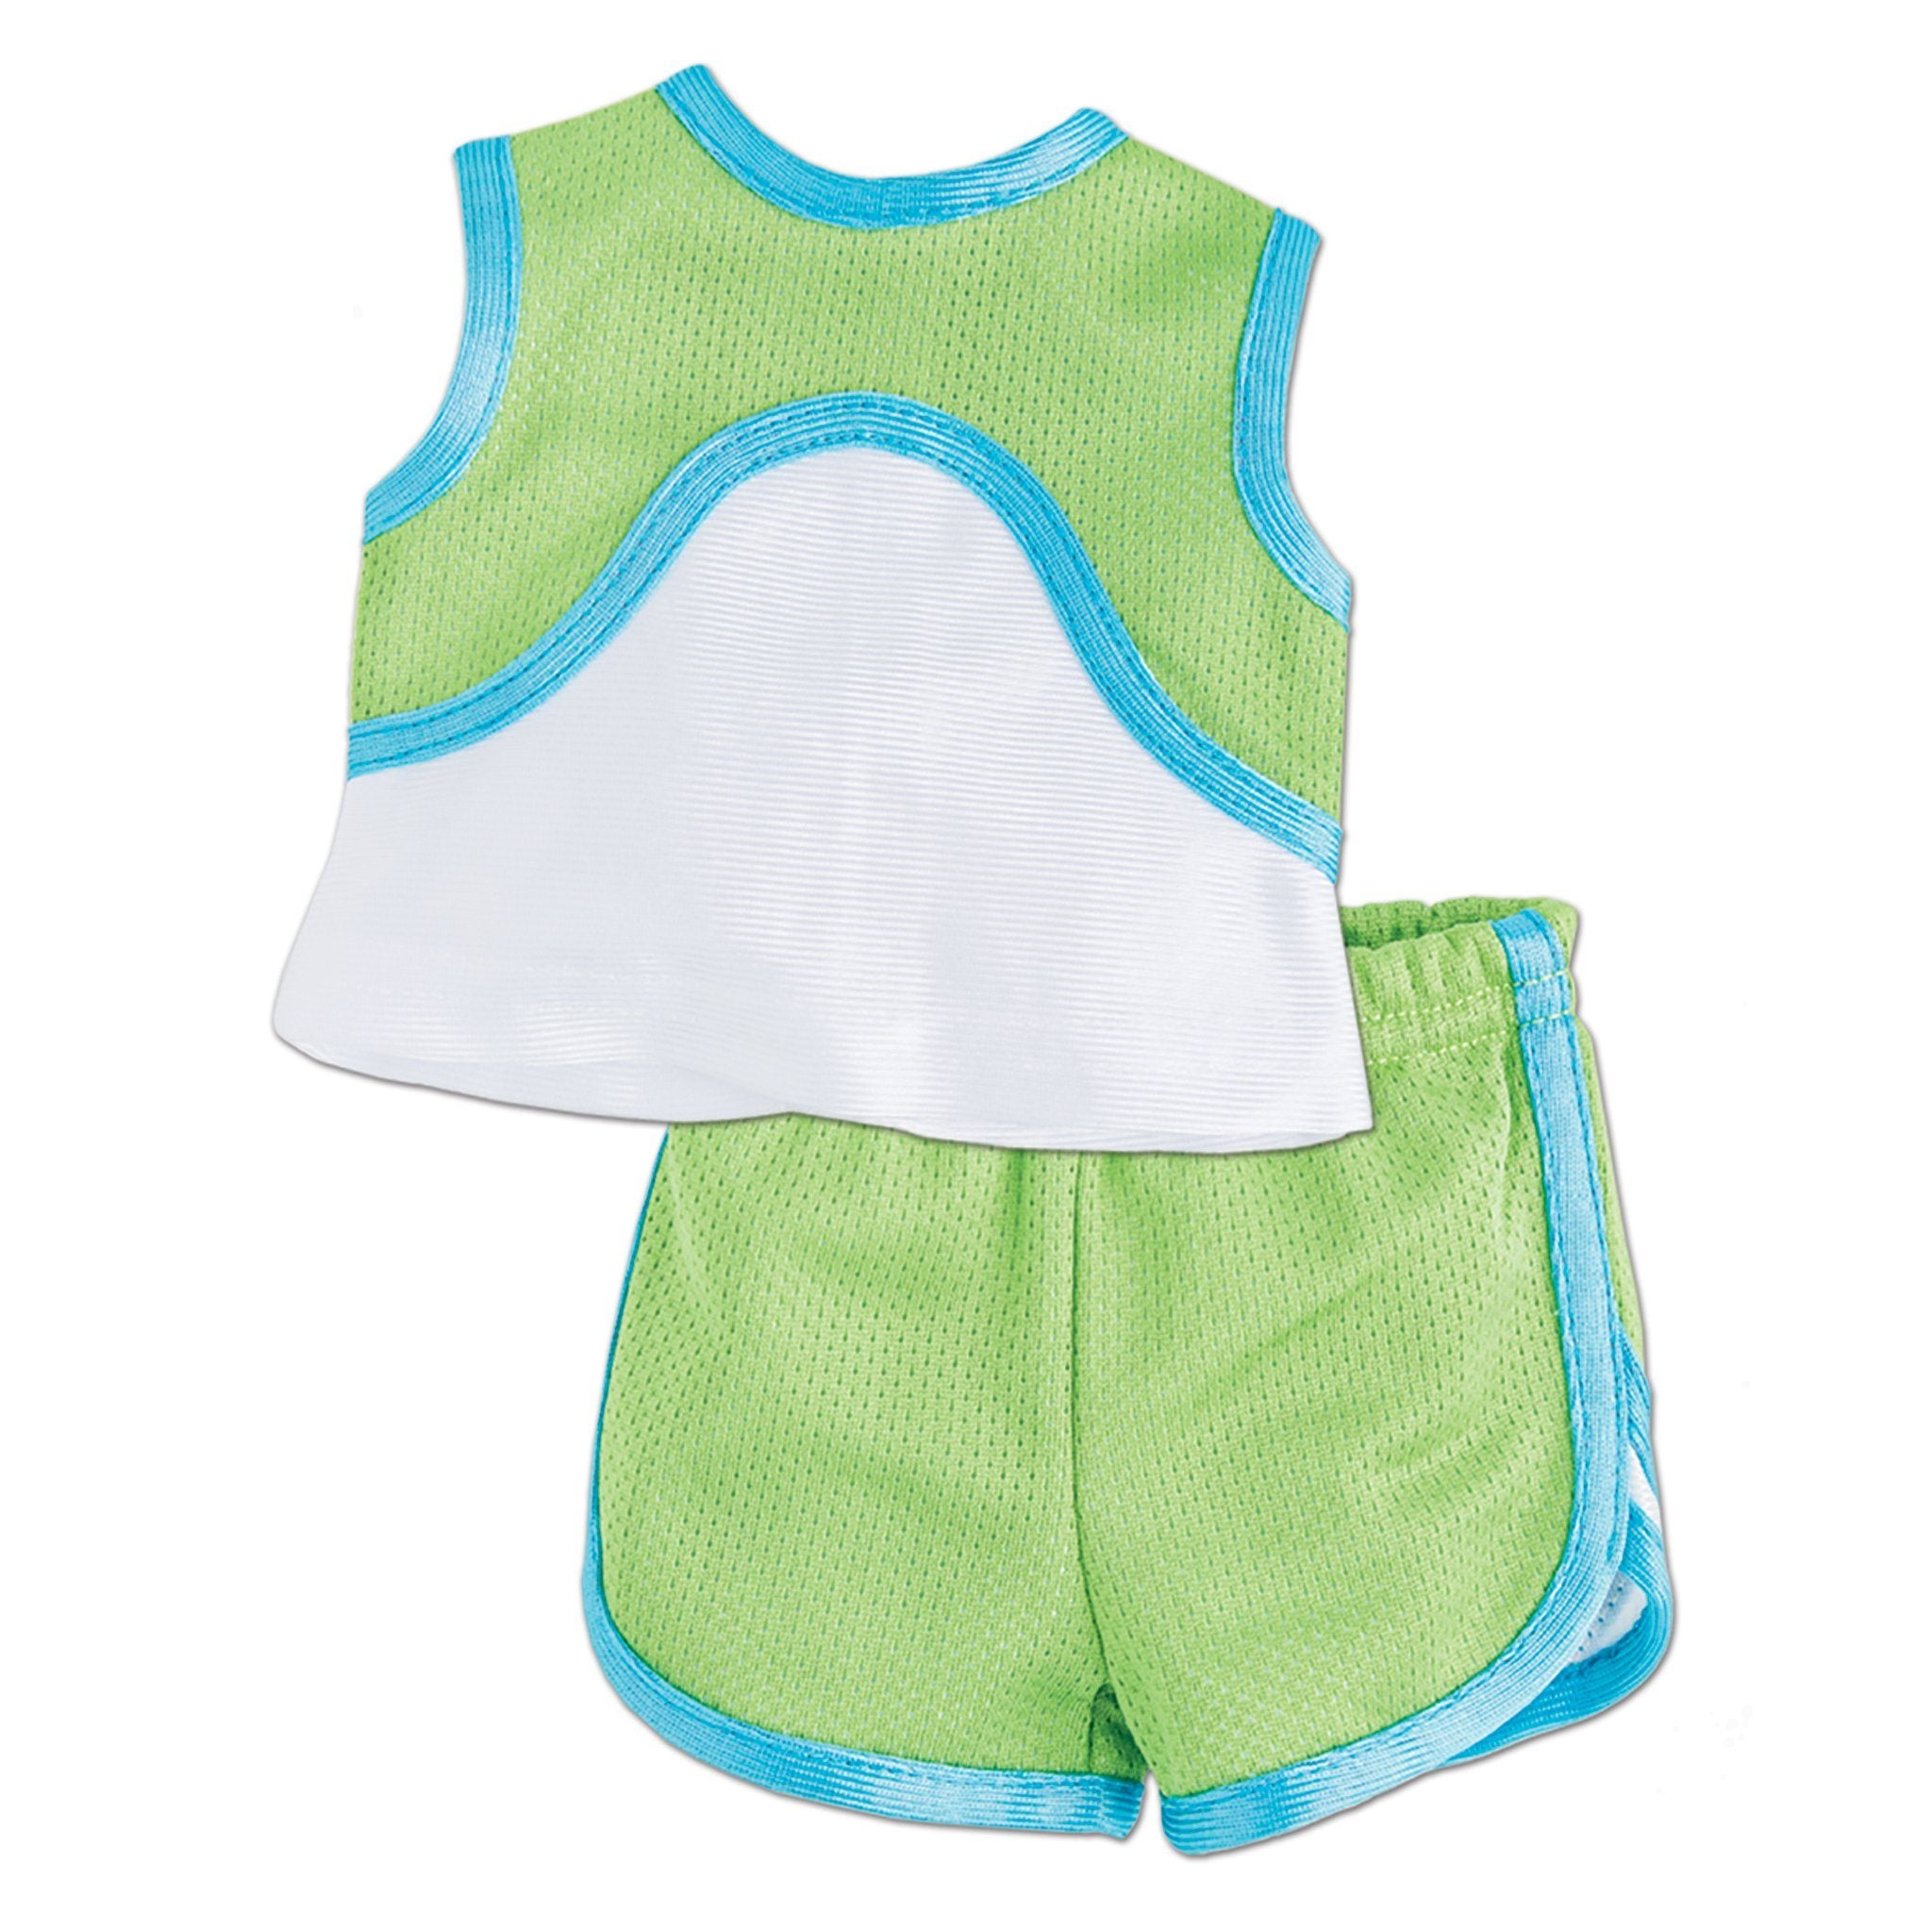 Flash Dash 6-piece running gear set green sleeveless top and running shorts with blue accent fit all 18 inch dolls.